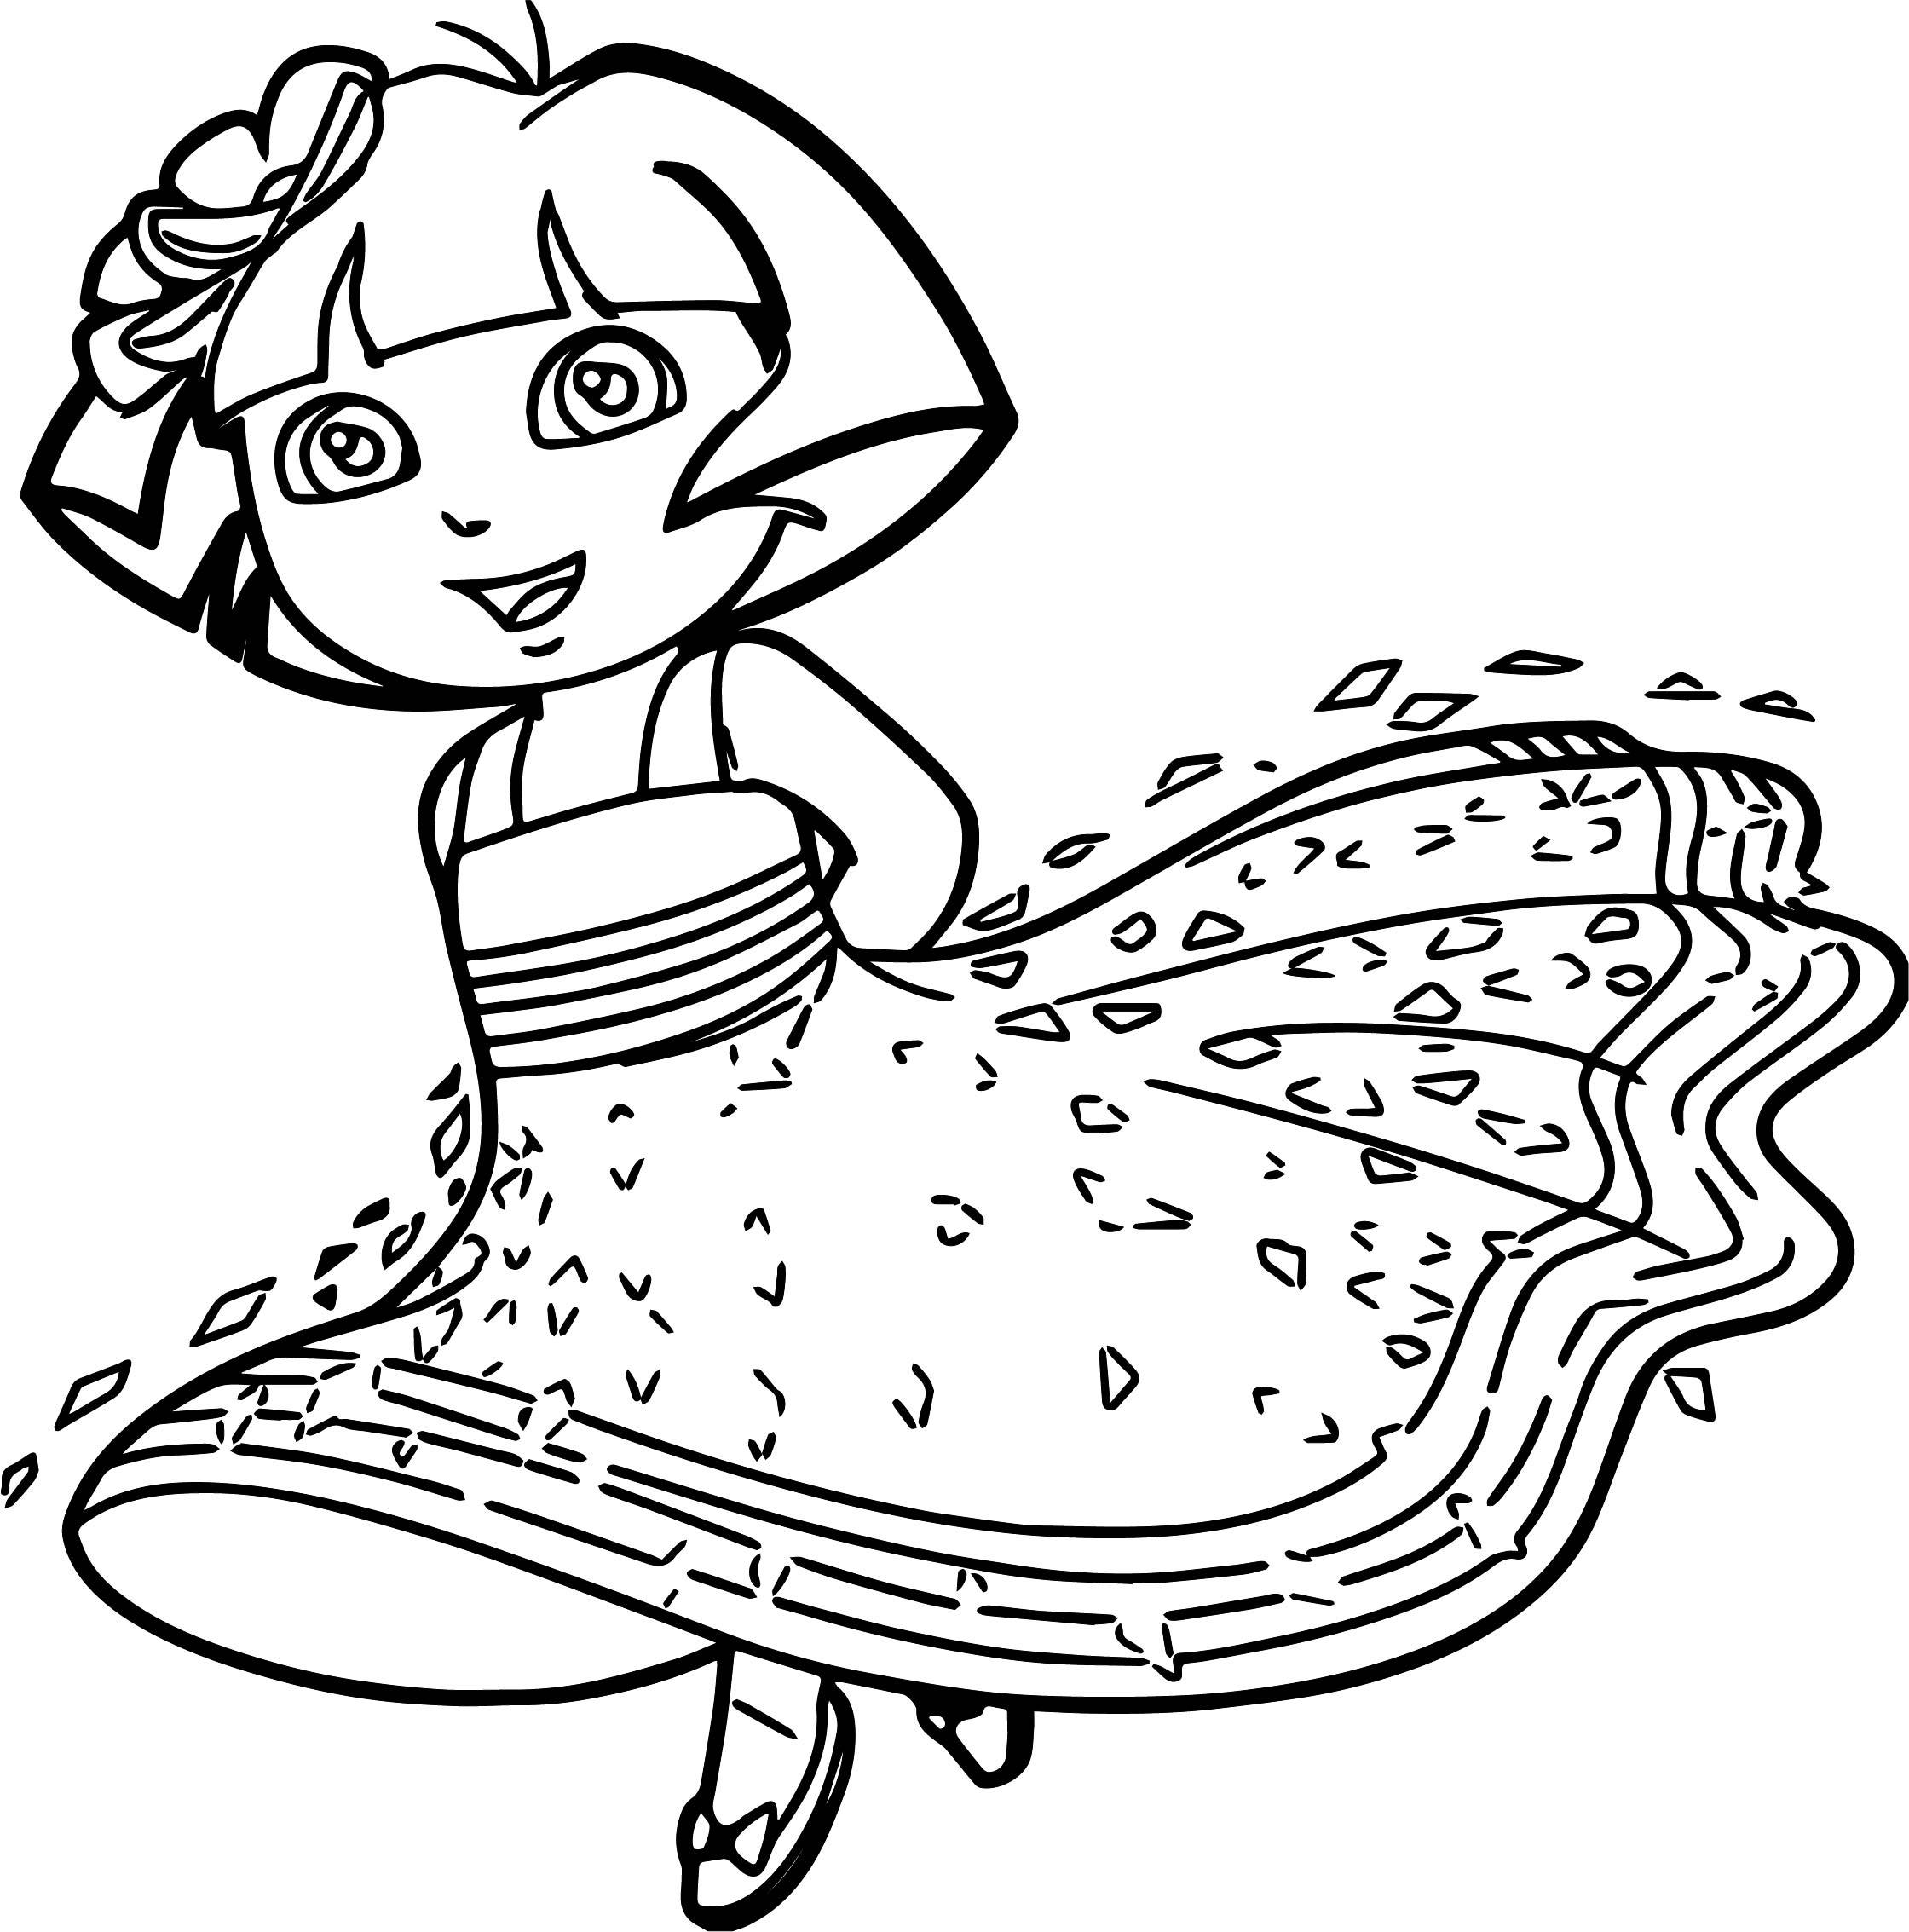 dora coloring pages online free free coloring pages to print out free coloring pages pages dora free online coloring